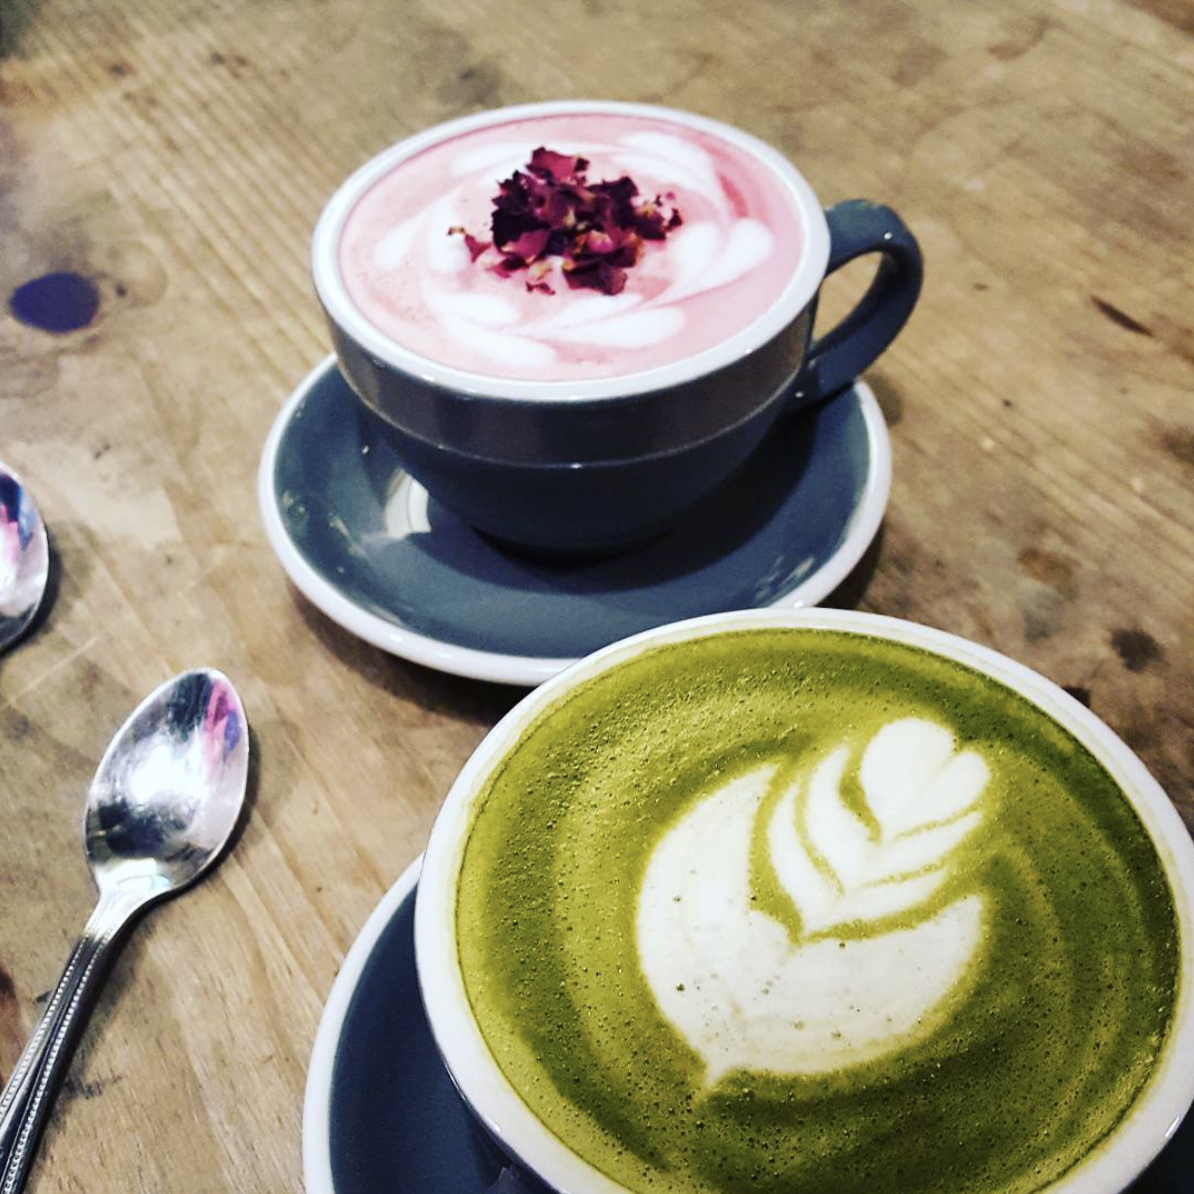 Love Her, Valentine's Day, Valentine, Romance, Life, Lifestyle, Blogger, Bloggers, Coffee, Latte, Latte Art, Matcha, Matcha Latte, Rose Latte, AIDA Shoreditch, AIDA, Shoreditch, London, East London, Friendship, Blog A Book Etc, Fay